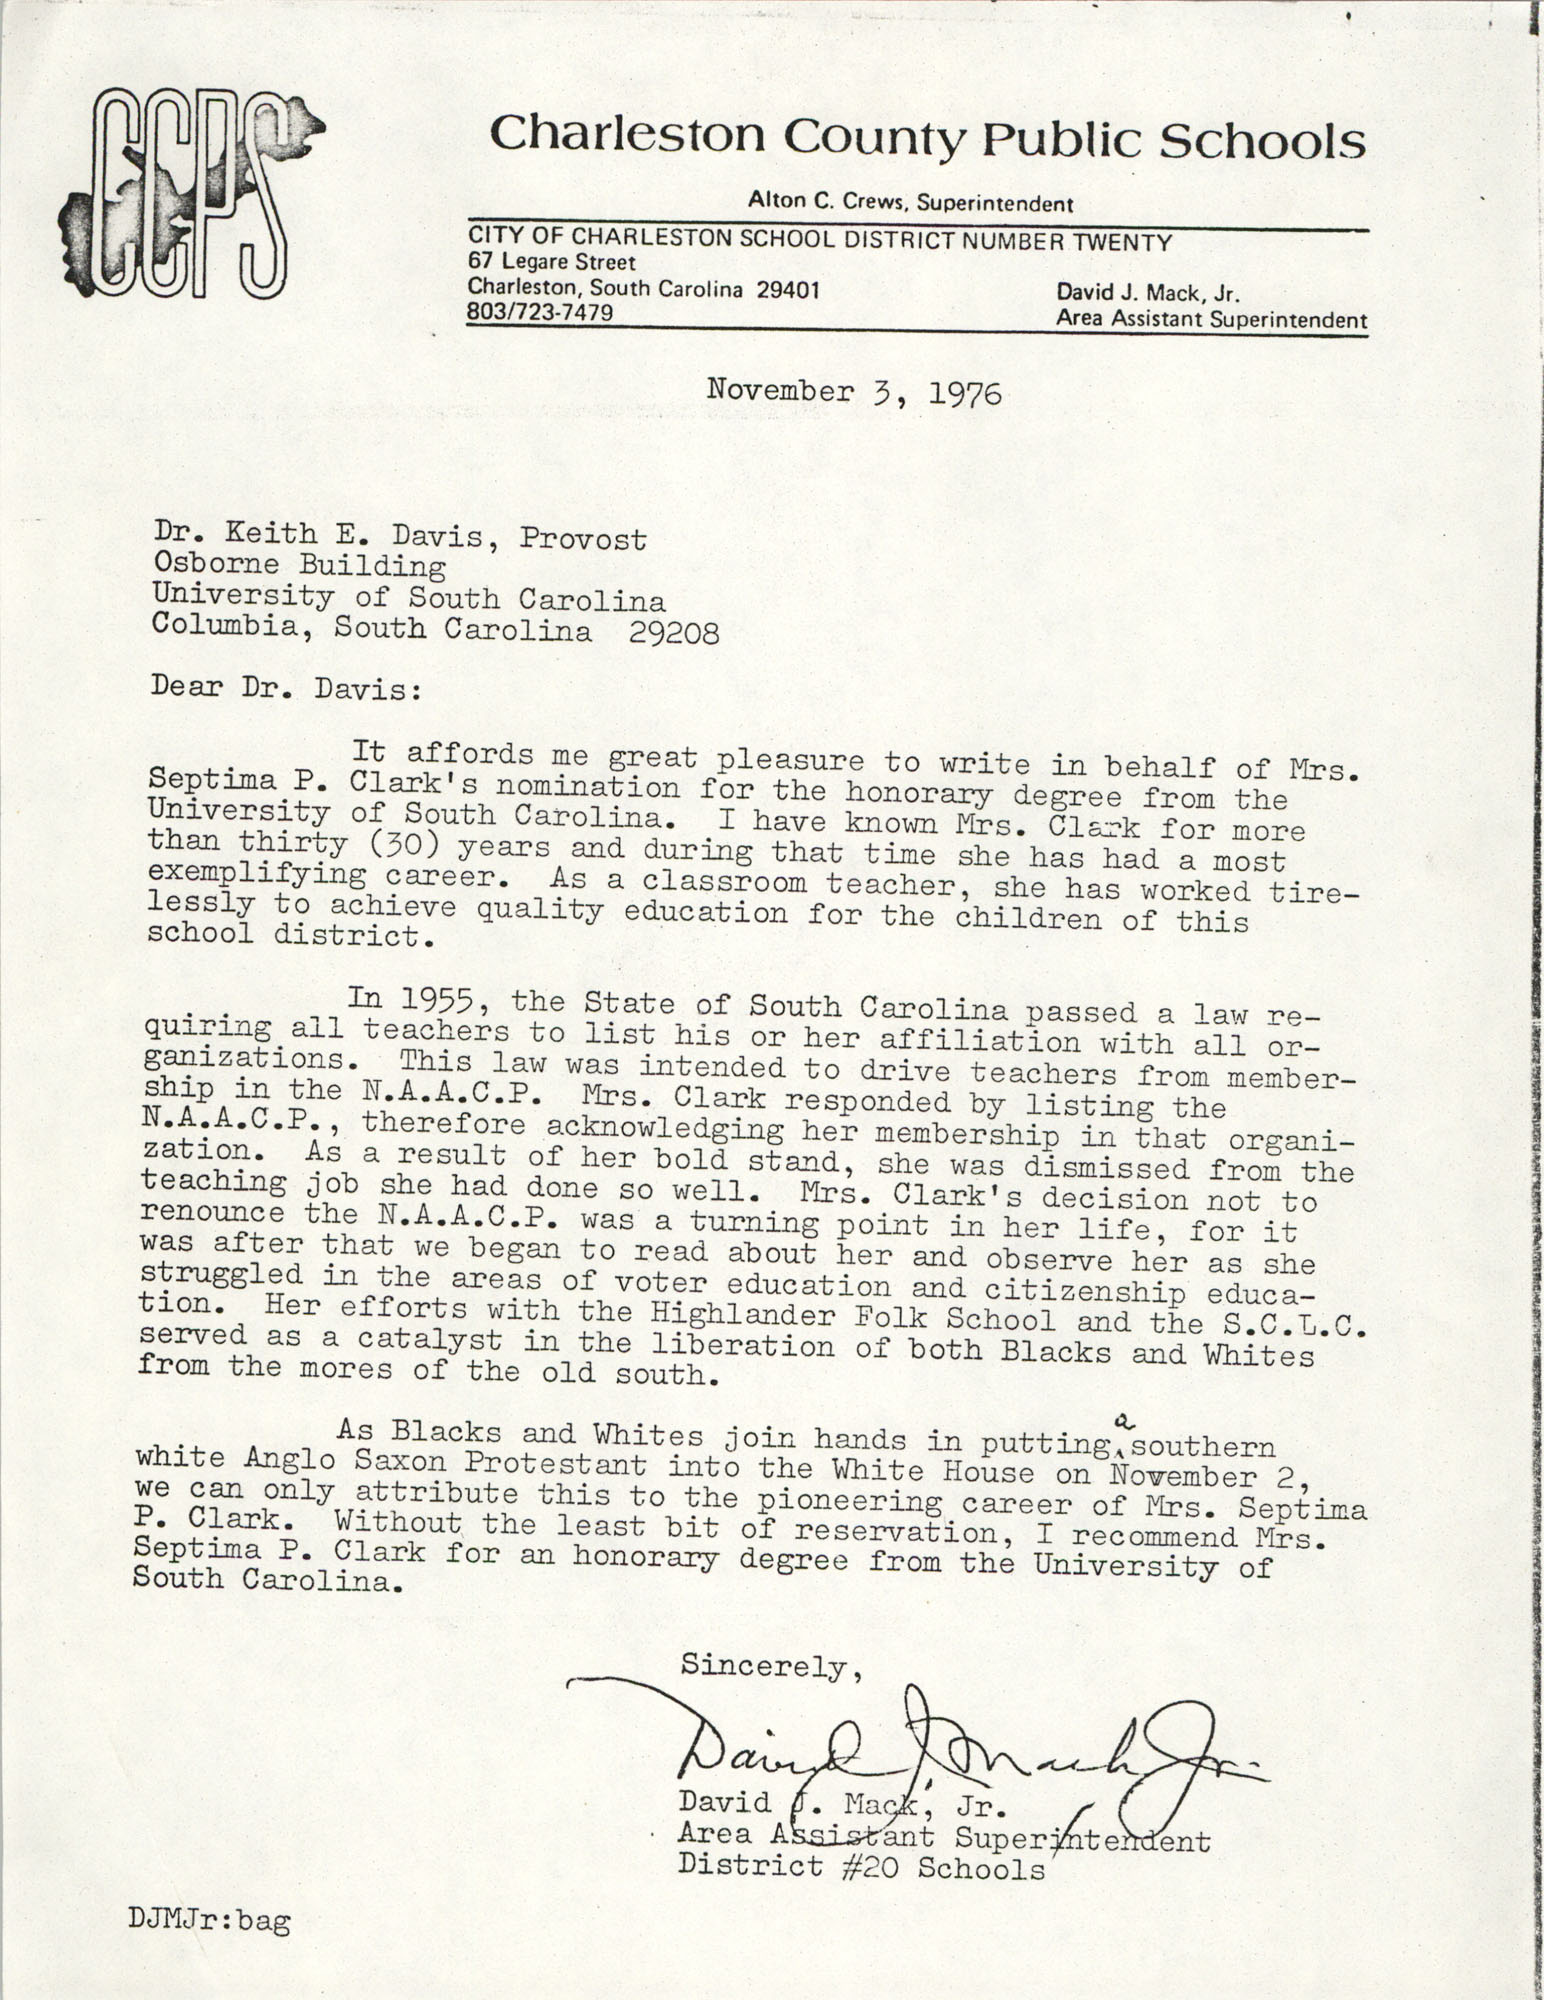 Letter from David J. Mack, Jr. to Keith E. Davis, November 3, 1976